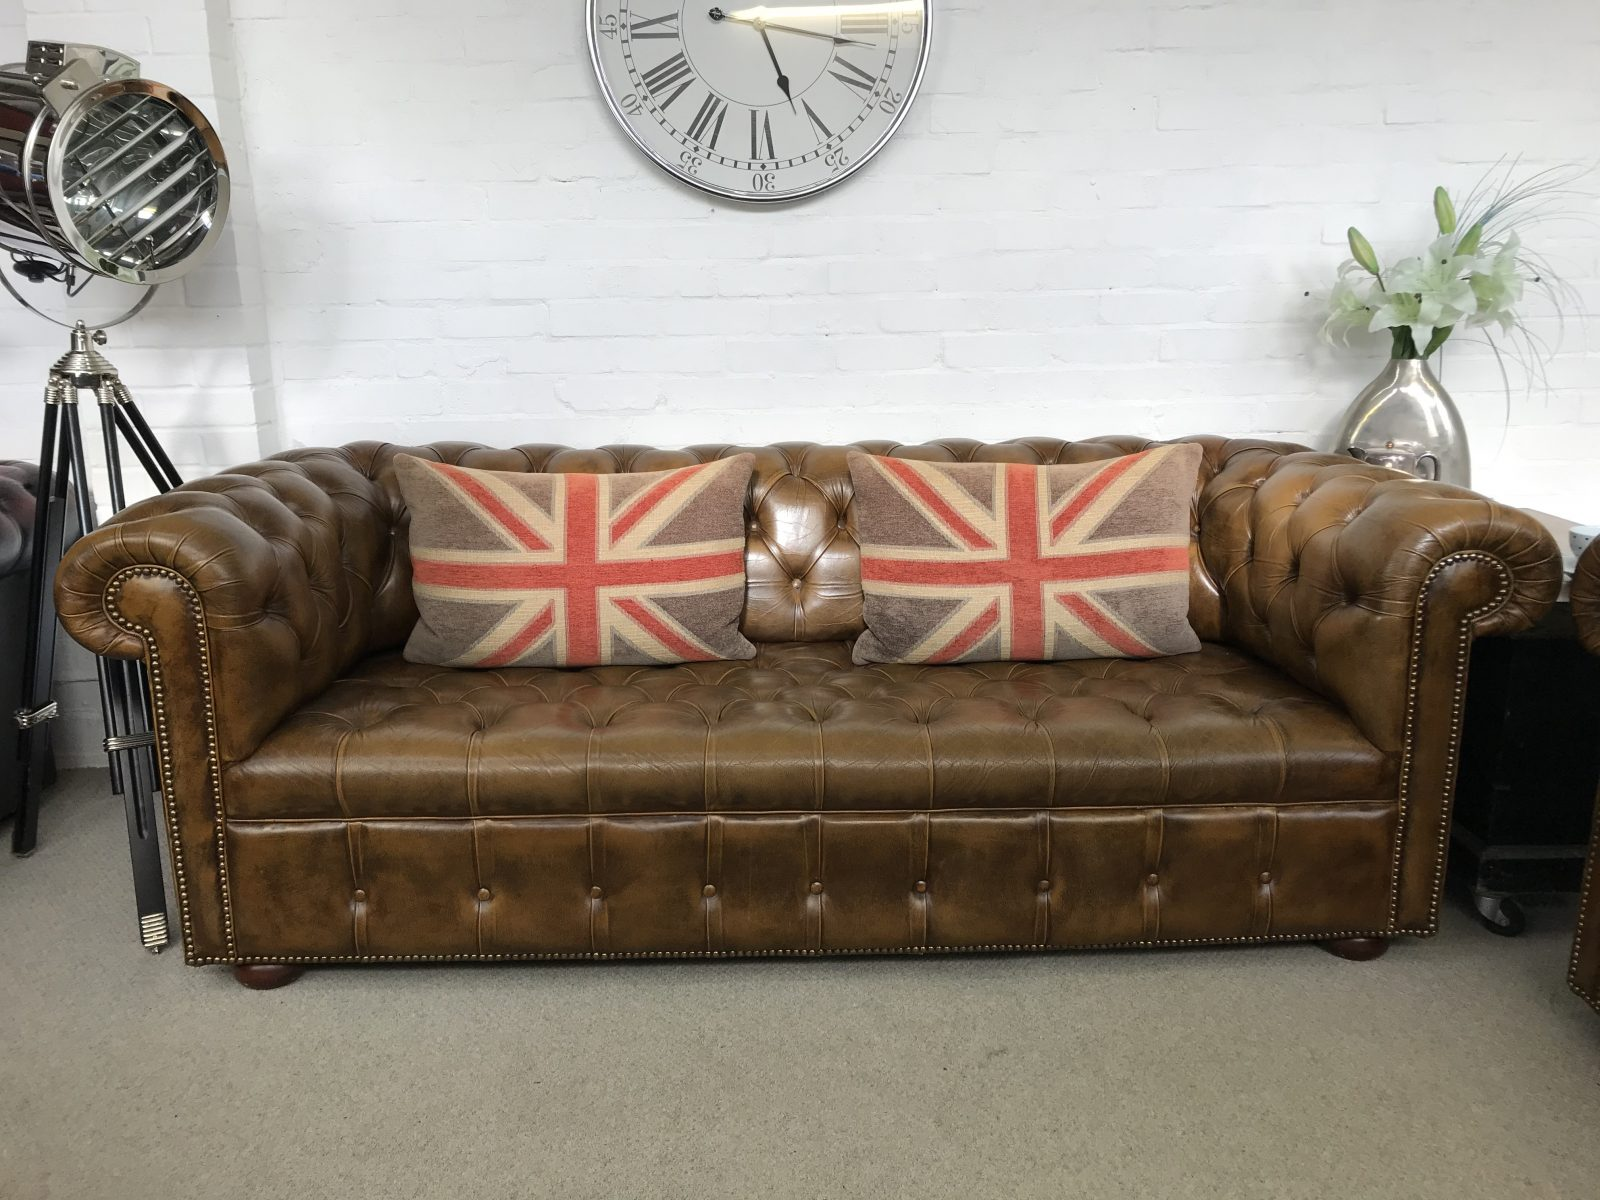 Stunning Golden Tan 3 Seater Chesterfield Sofa.( Matching 2 Seater Available)